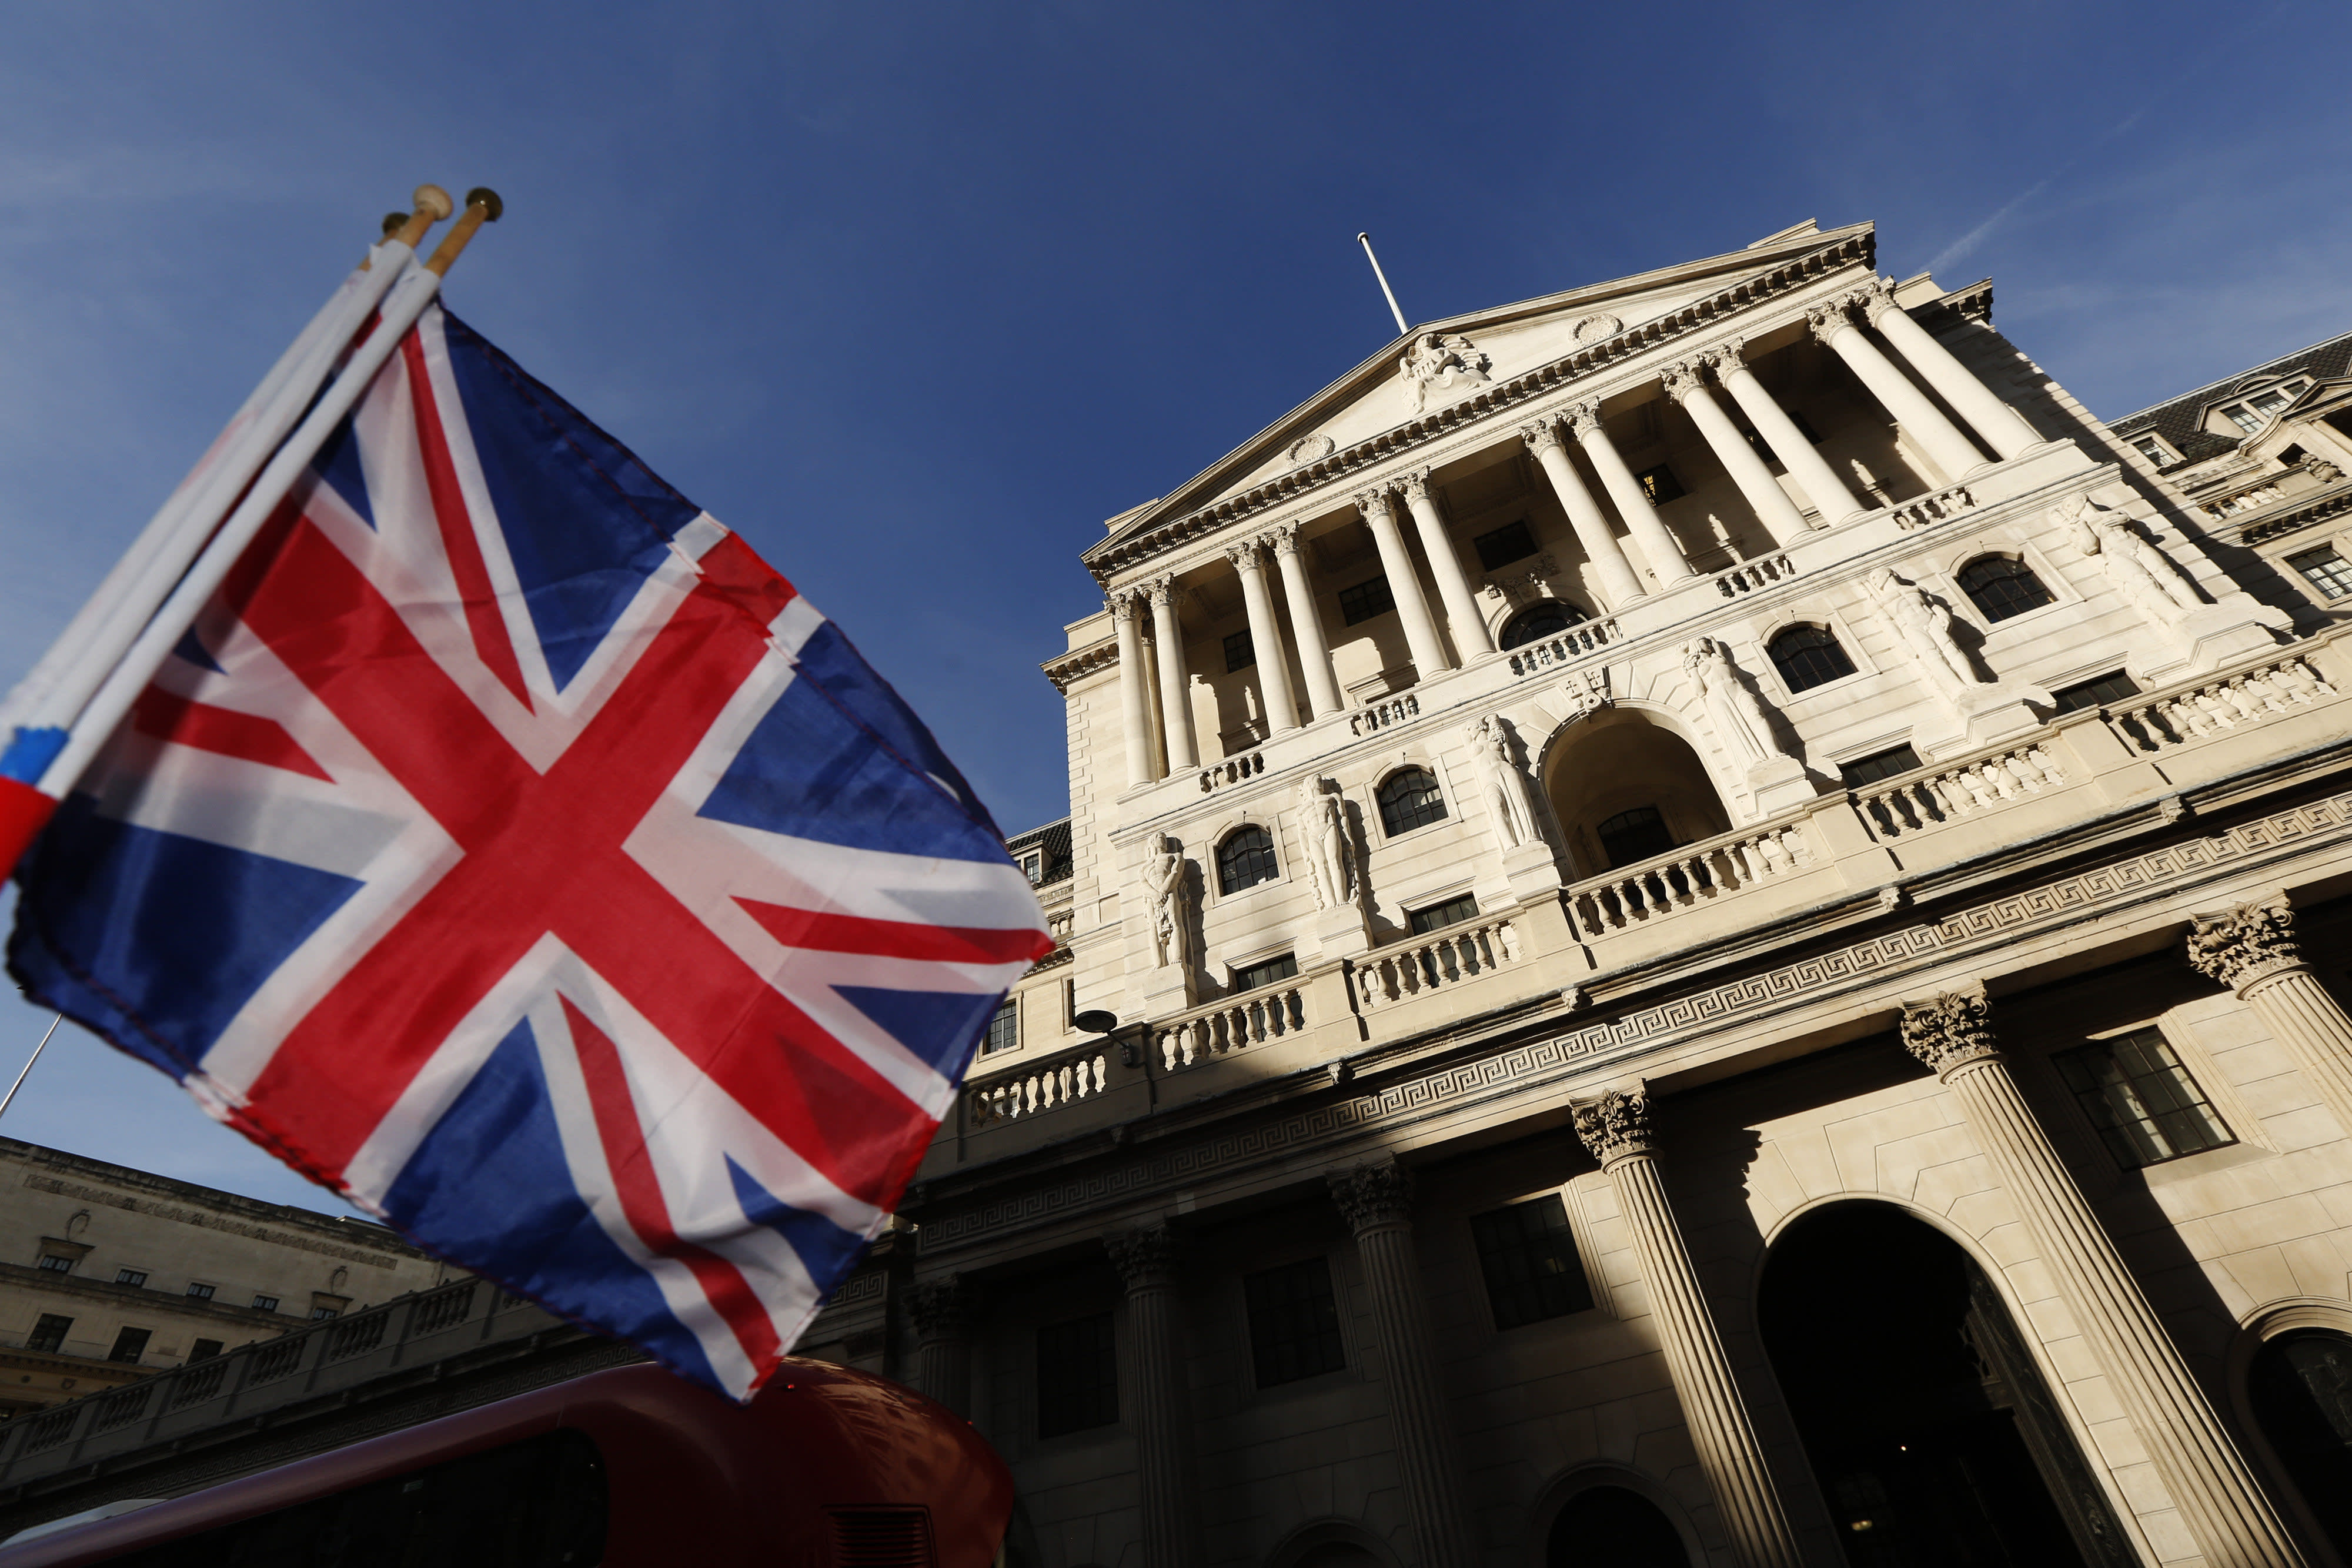 Ruins to rewards: UK equities dubbed the 'dark horse'